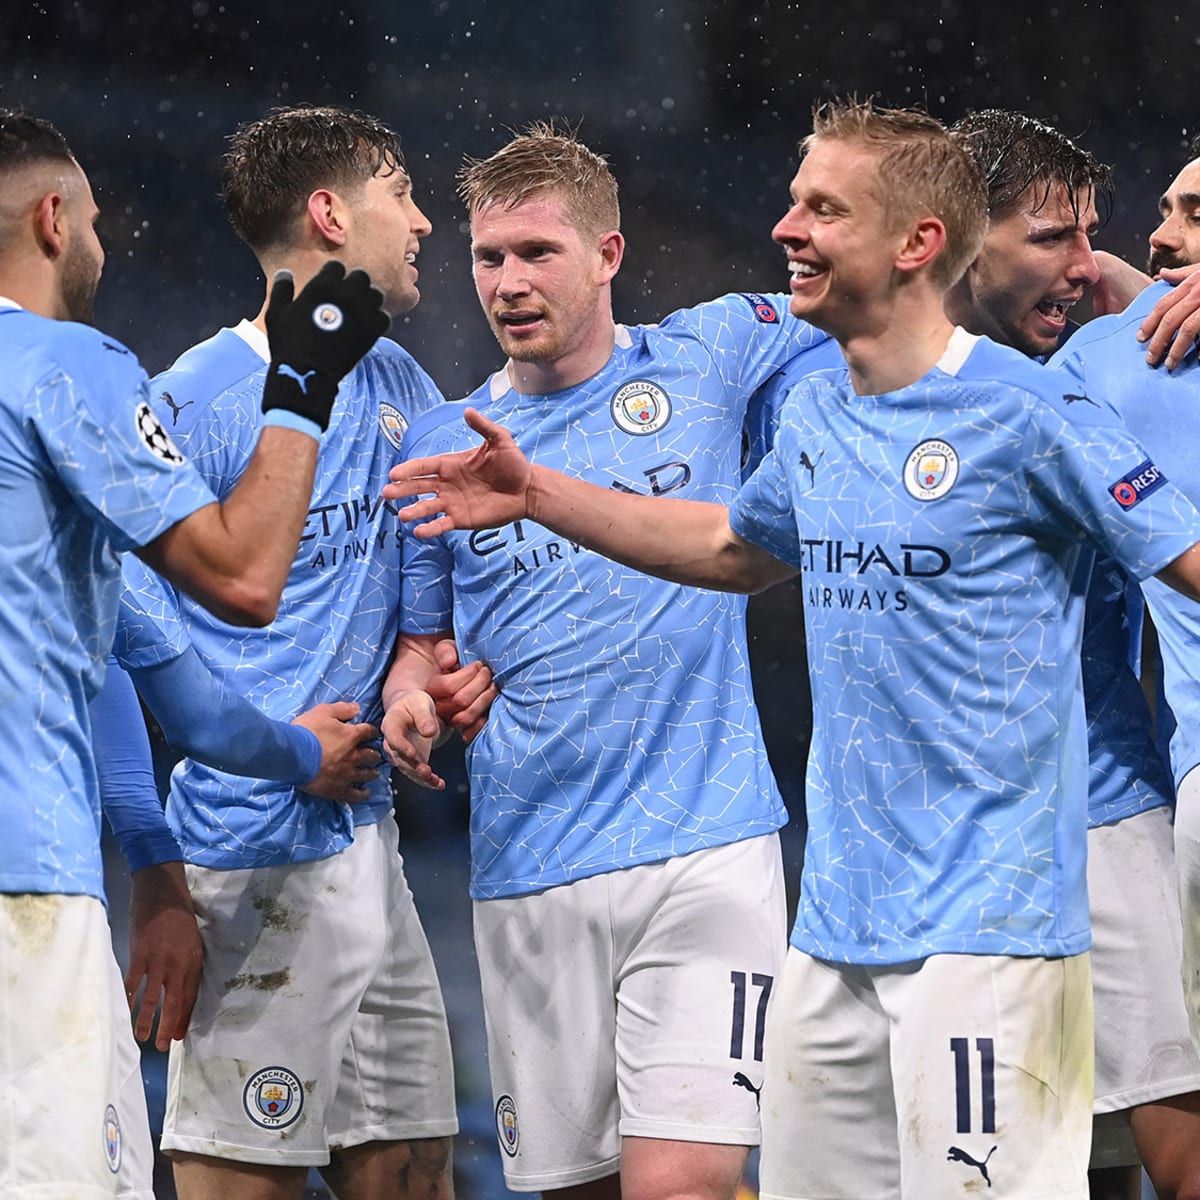 Man City reaches Champions League final, outdoing PSG in every way - Sports  Illustrated